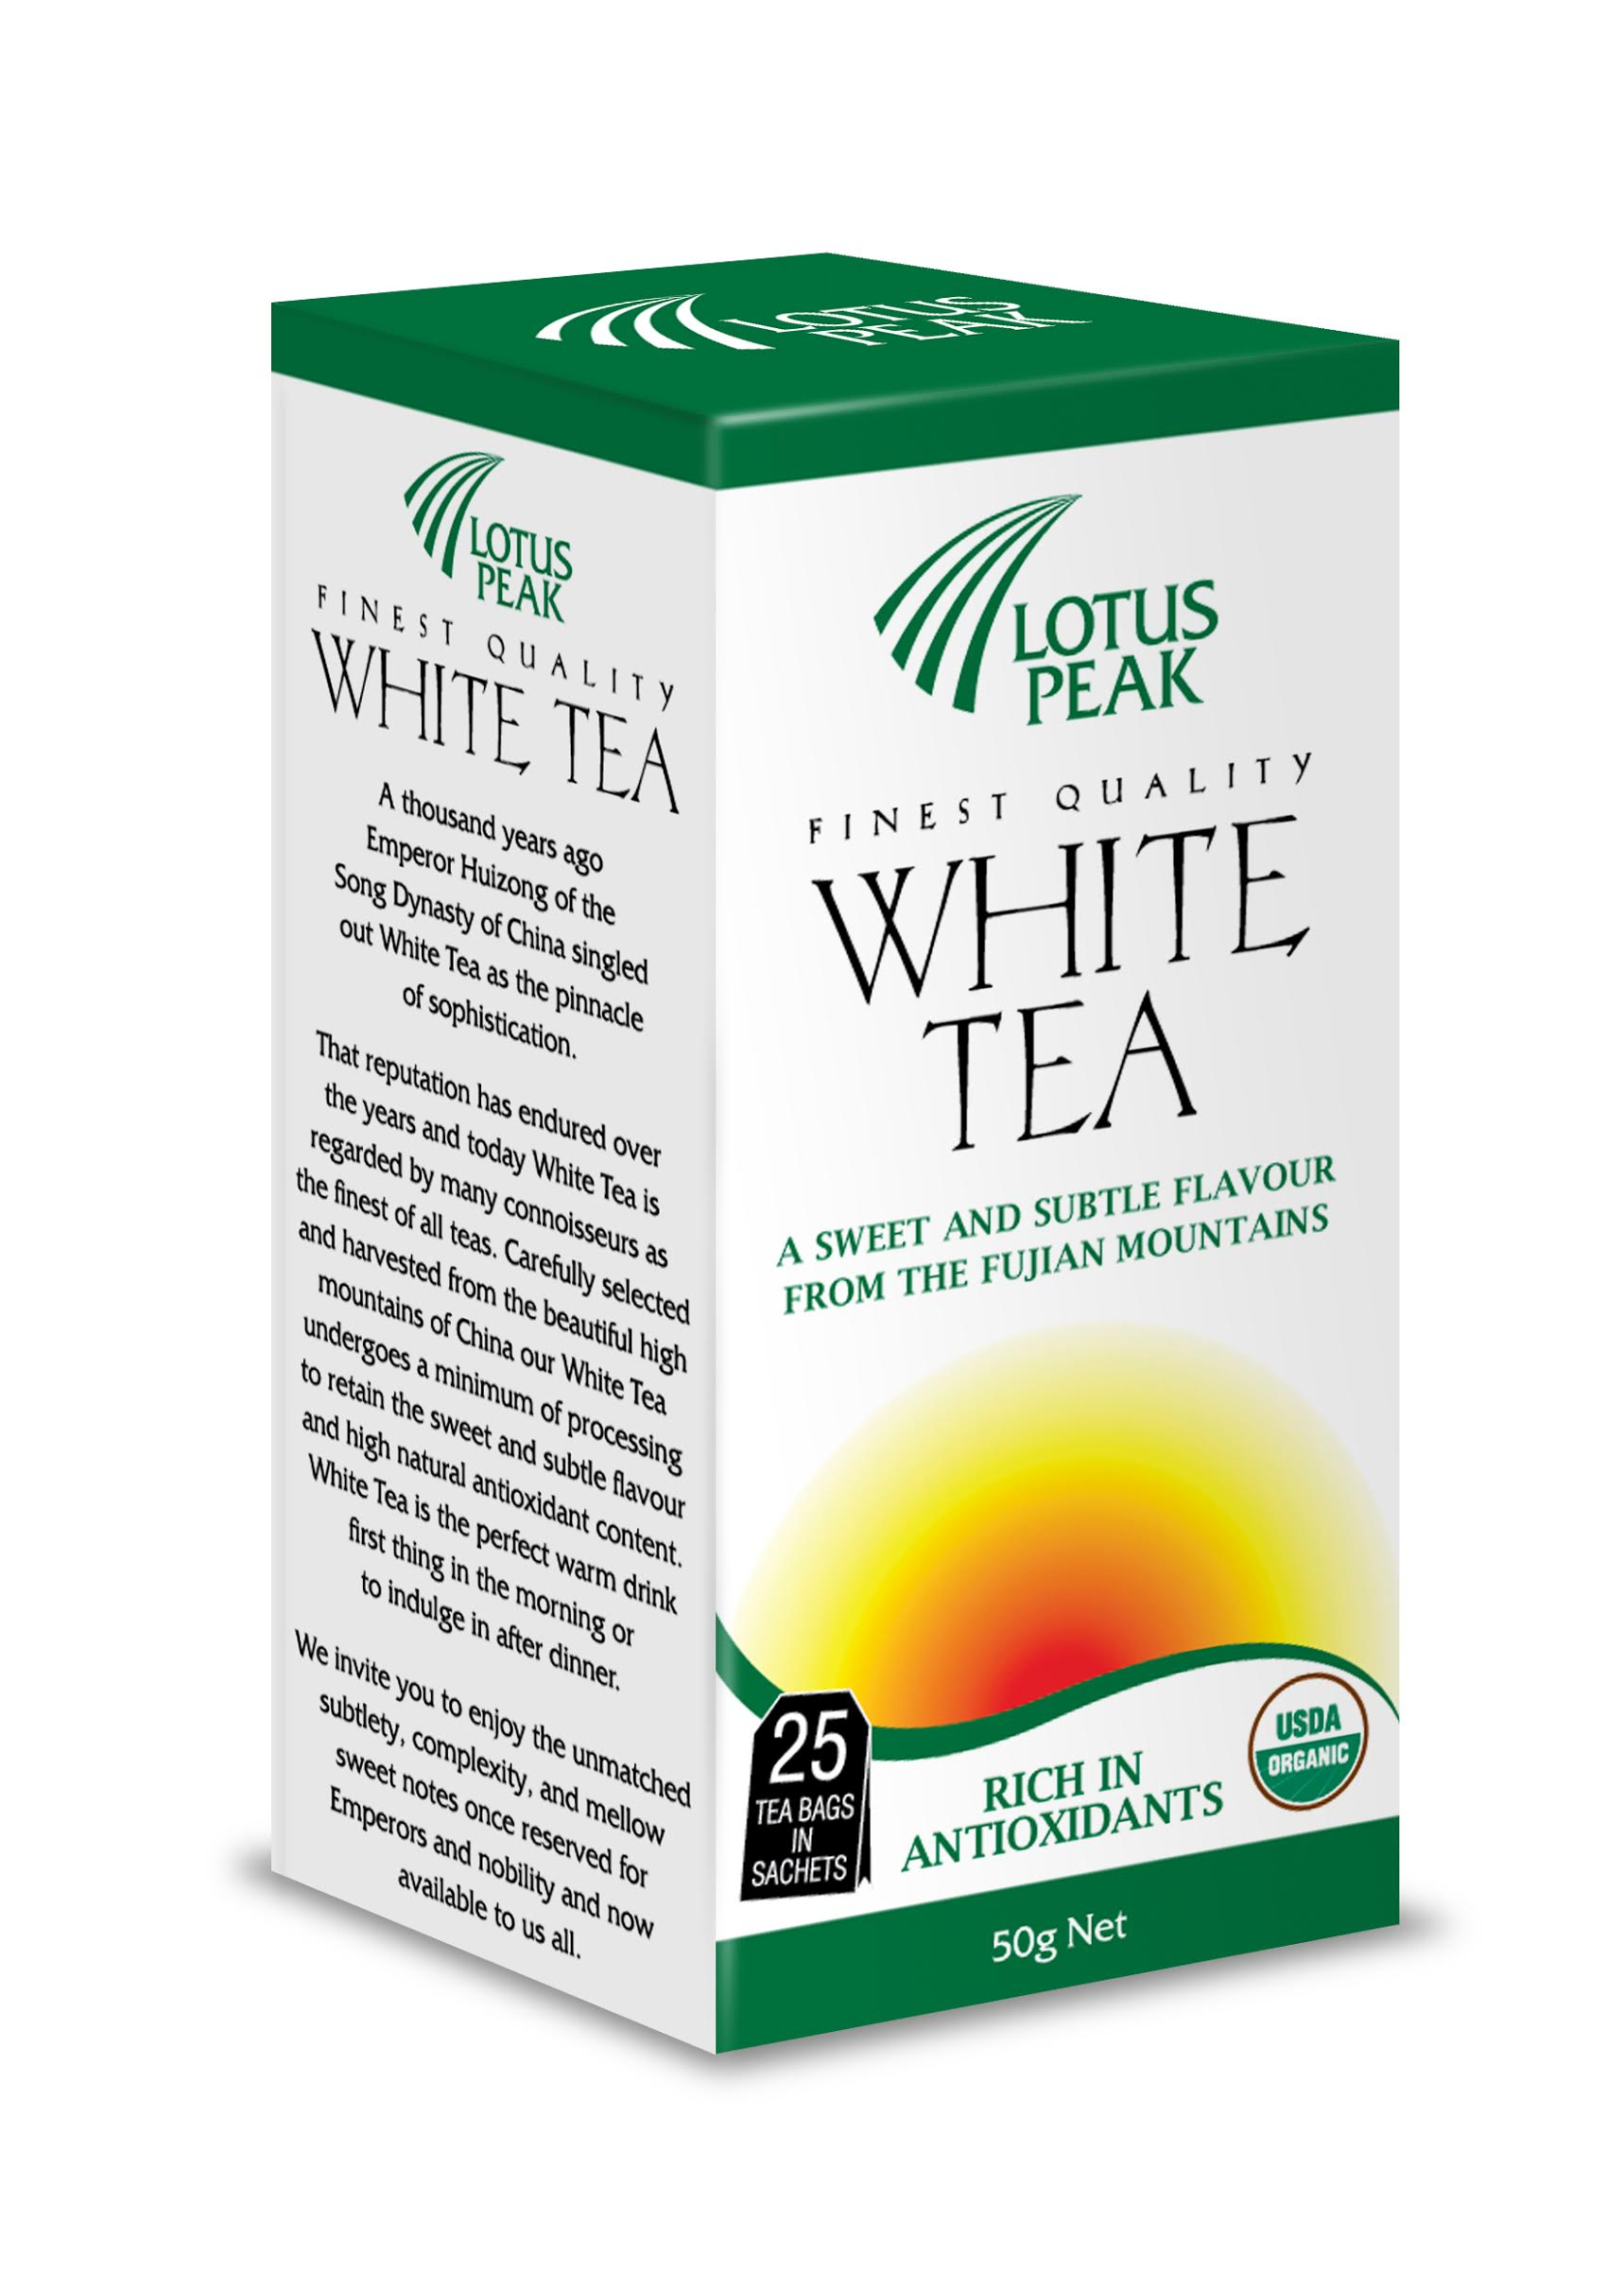 New LP White Tea 25 Pack Design - 3D.jpg